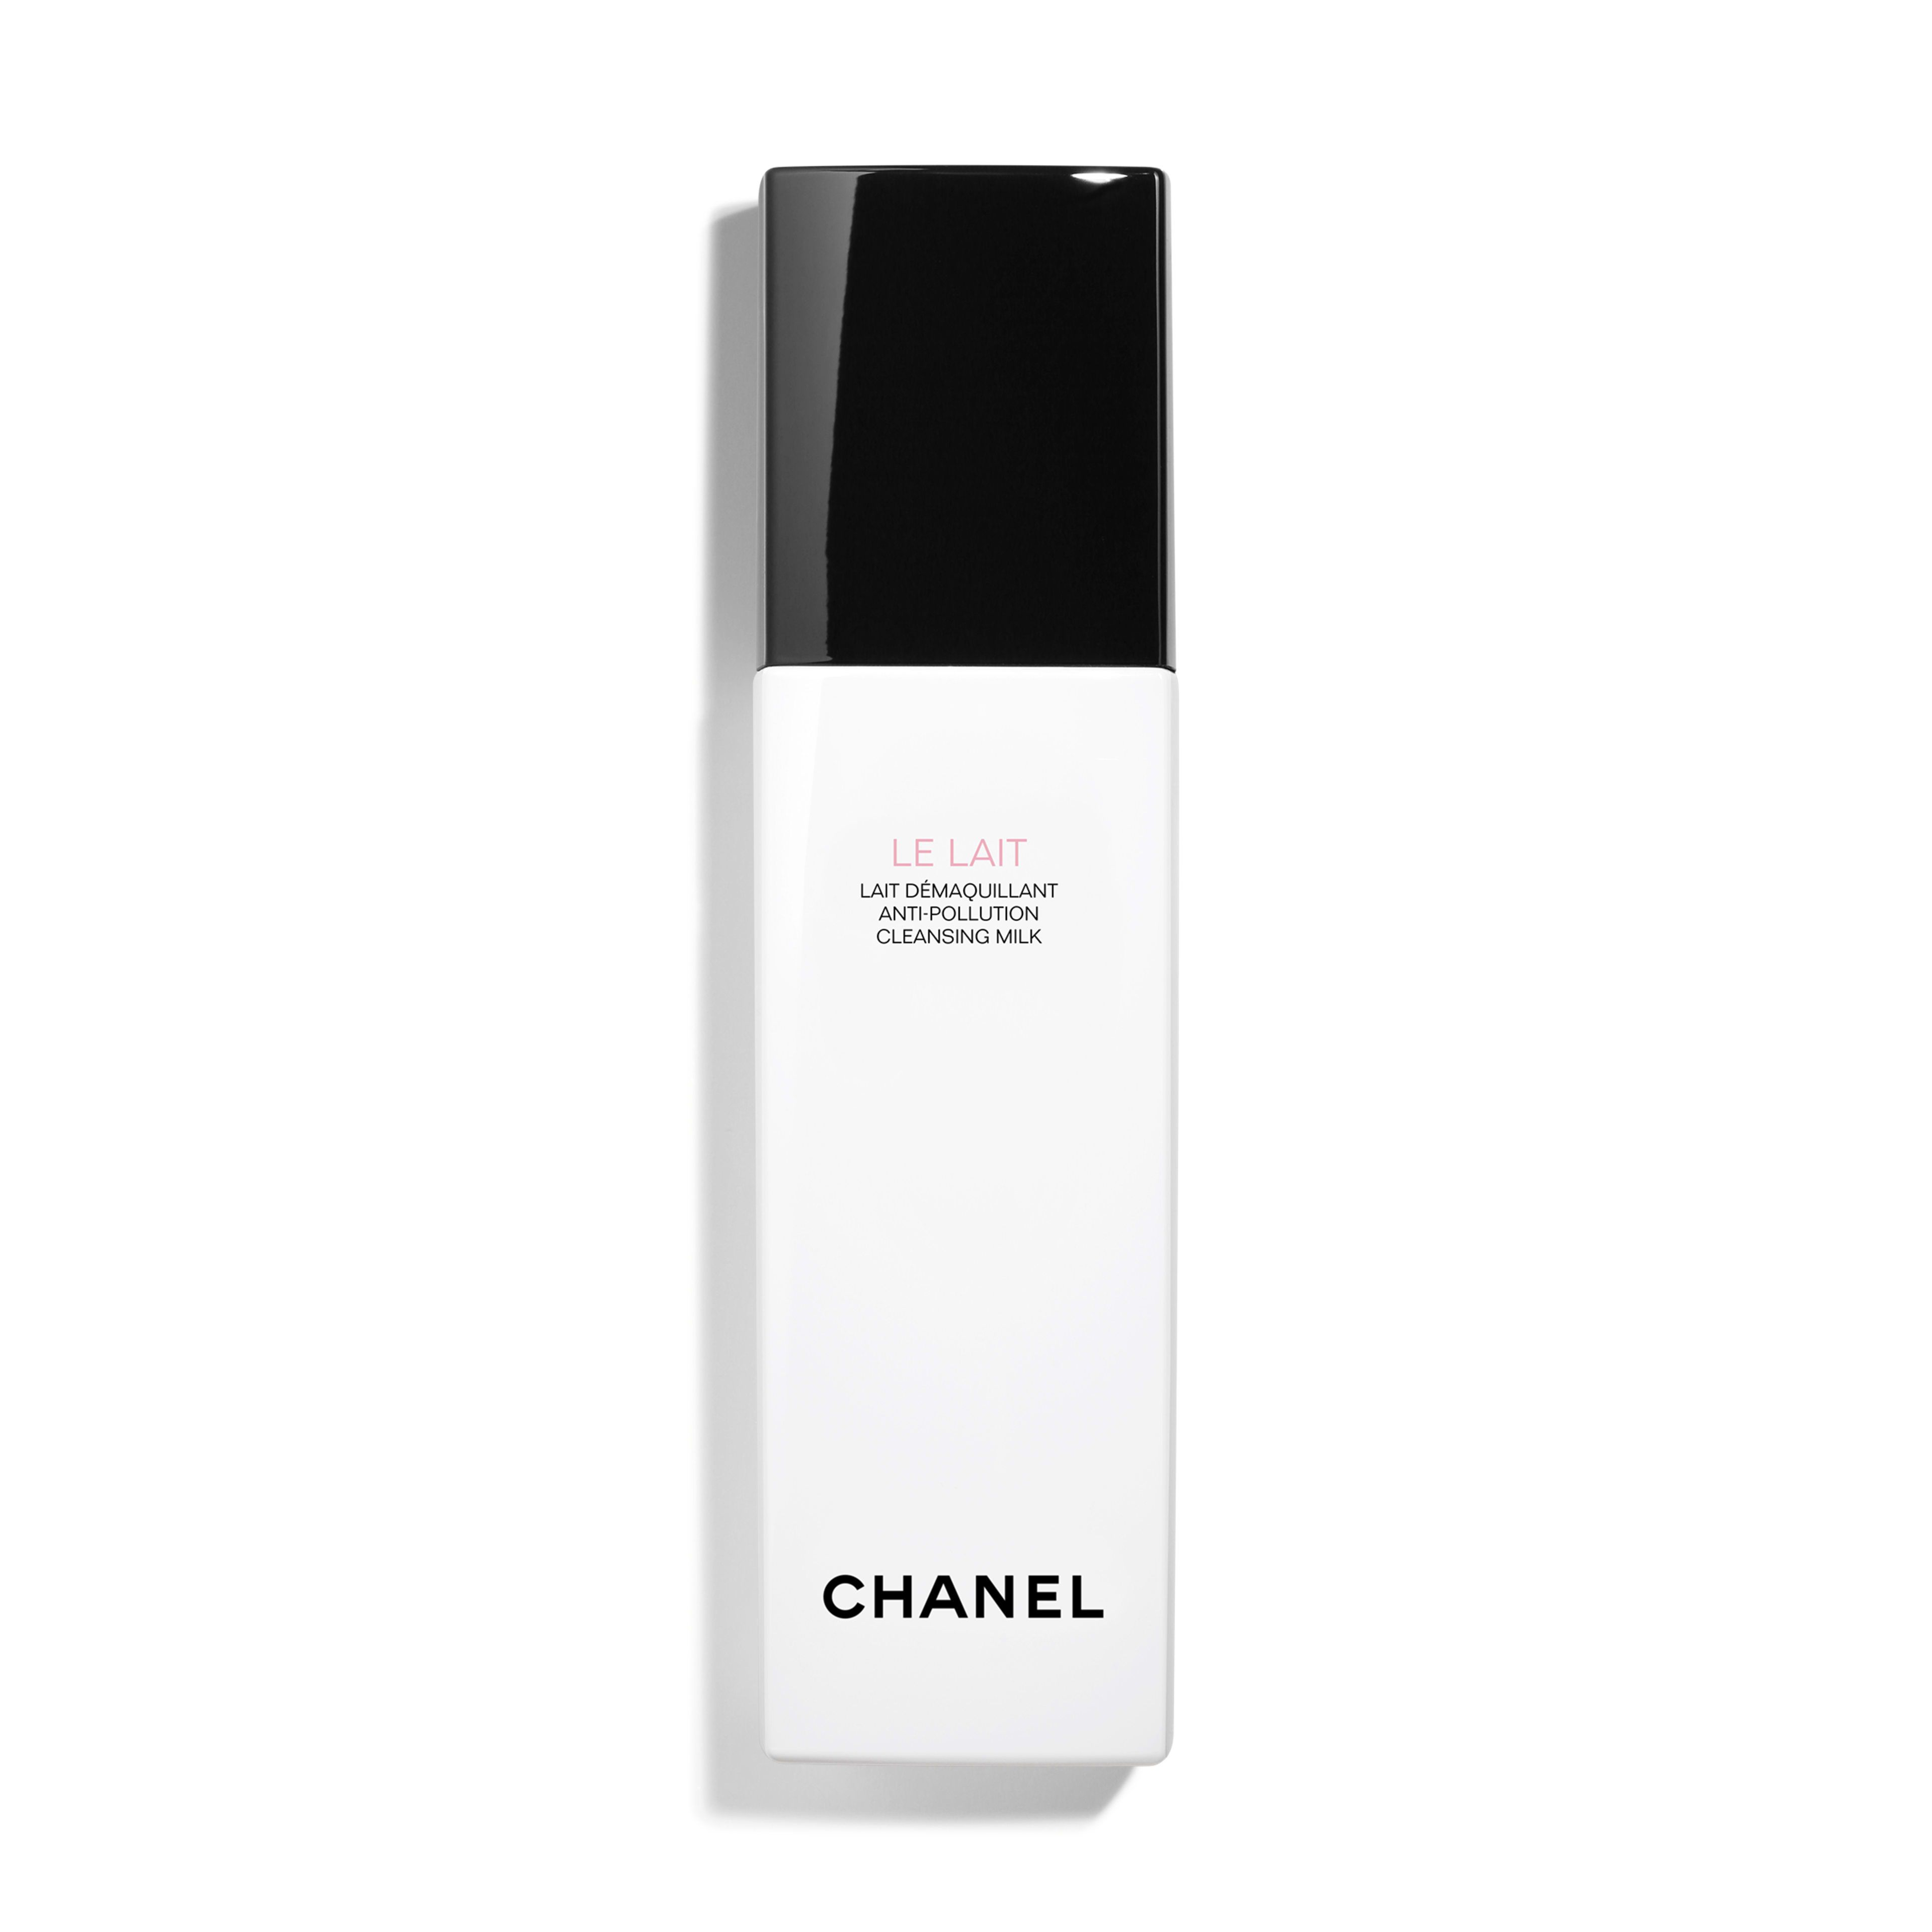 Chanel LE LAIT AntiPollution Cleansing Milk Cleansing